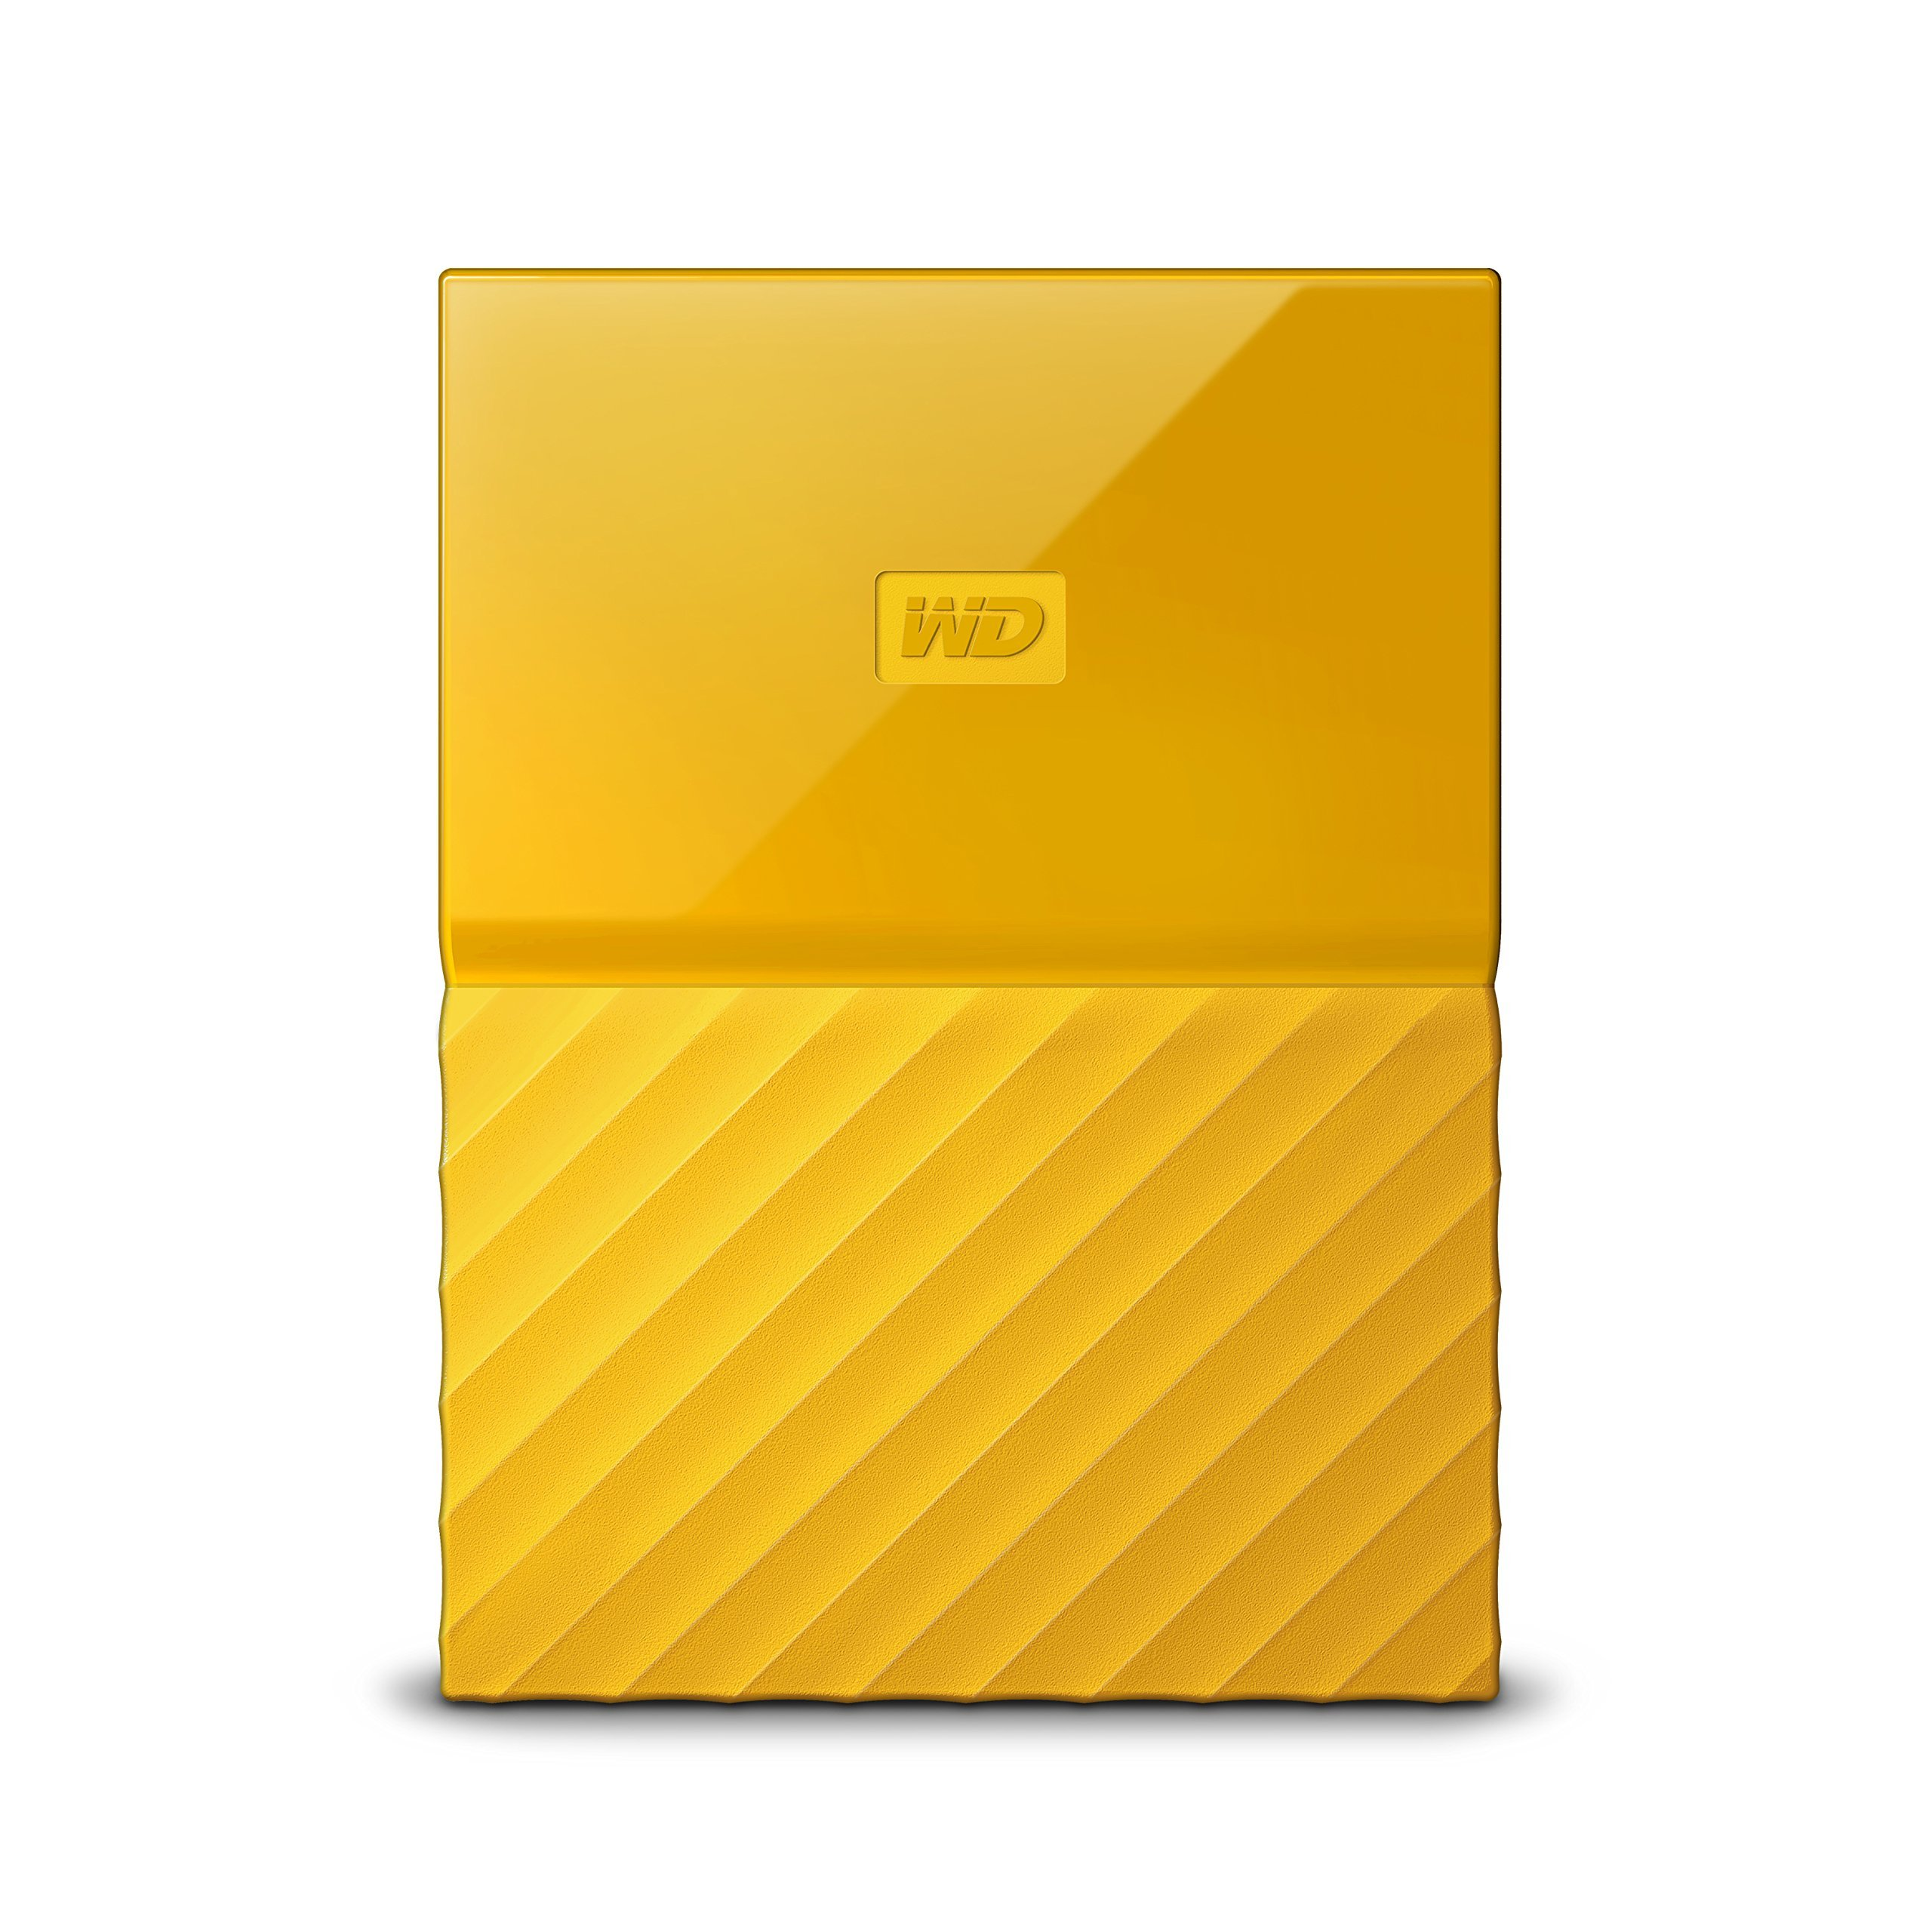 WD 2TB Yellow My Passport  Portable External Hard Drive - USB 3.0 - WDBYFT0020BYL-WESN (Certified Refurbished) by Western Digital